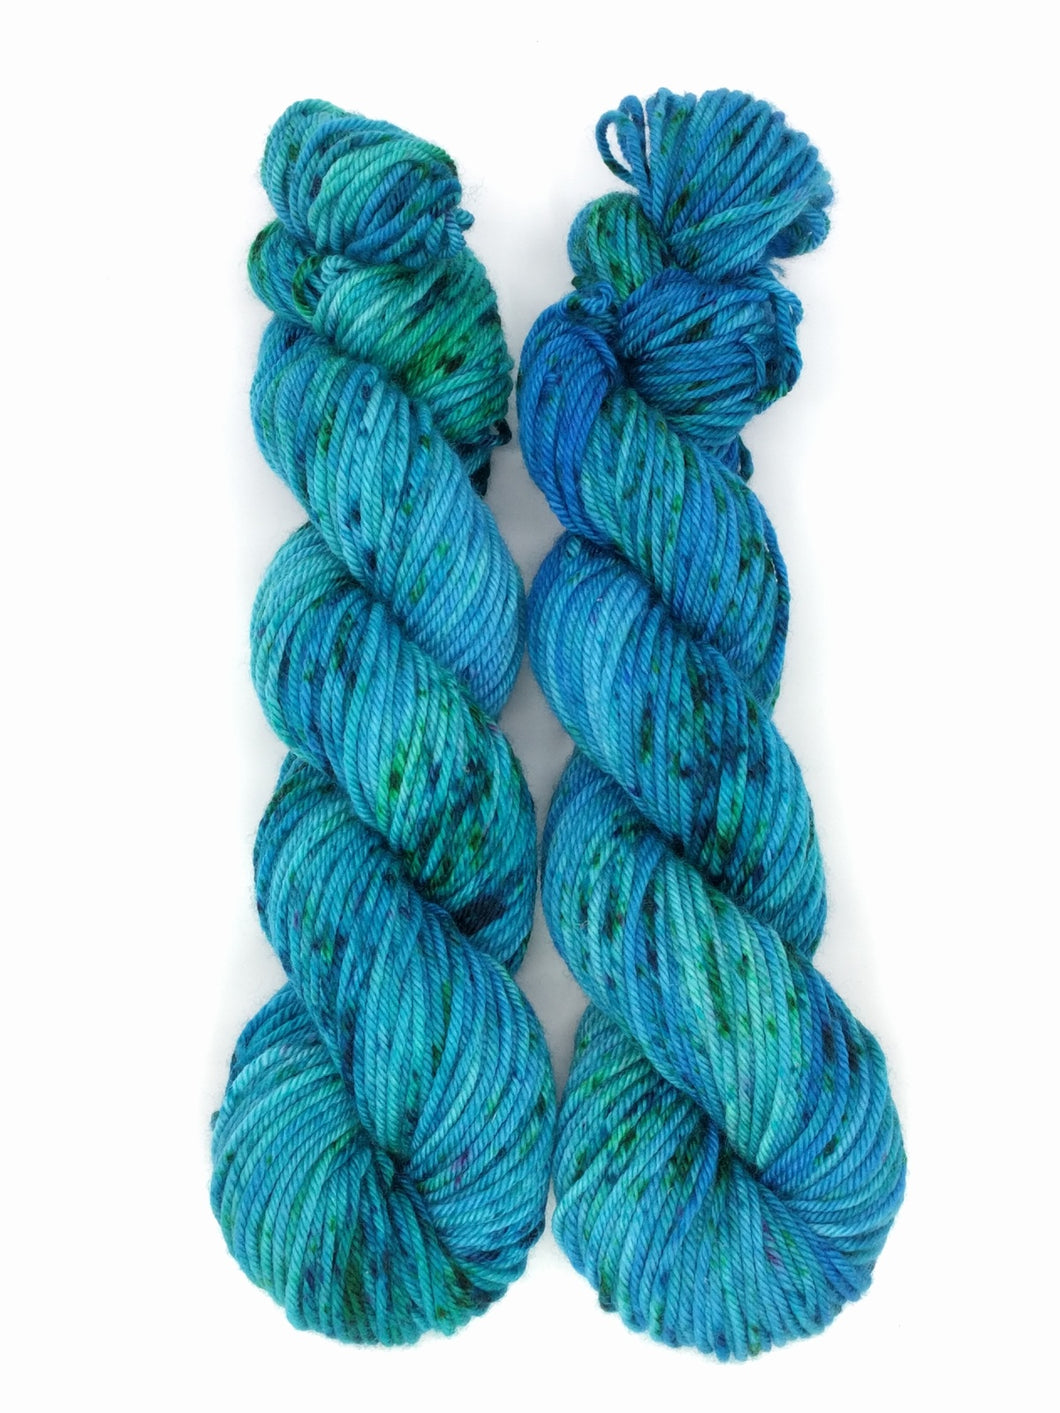 SMUGGLERS COVE- Worsted Merino